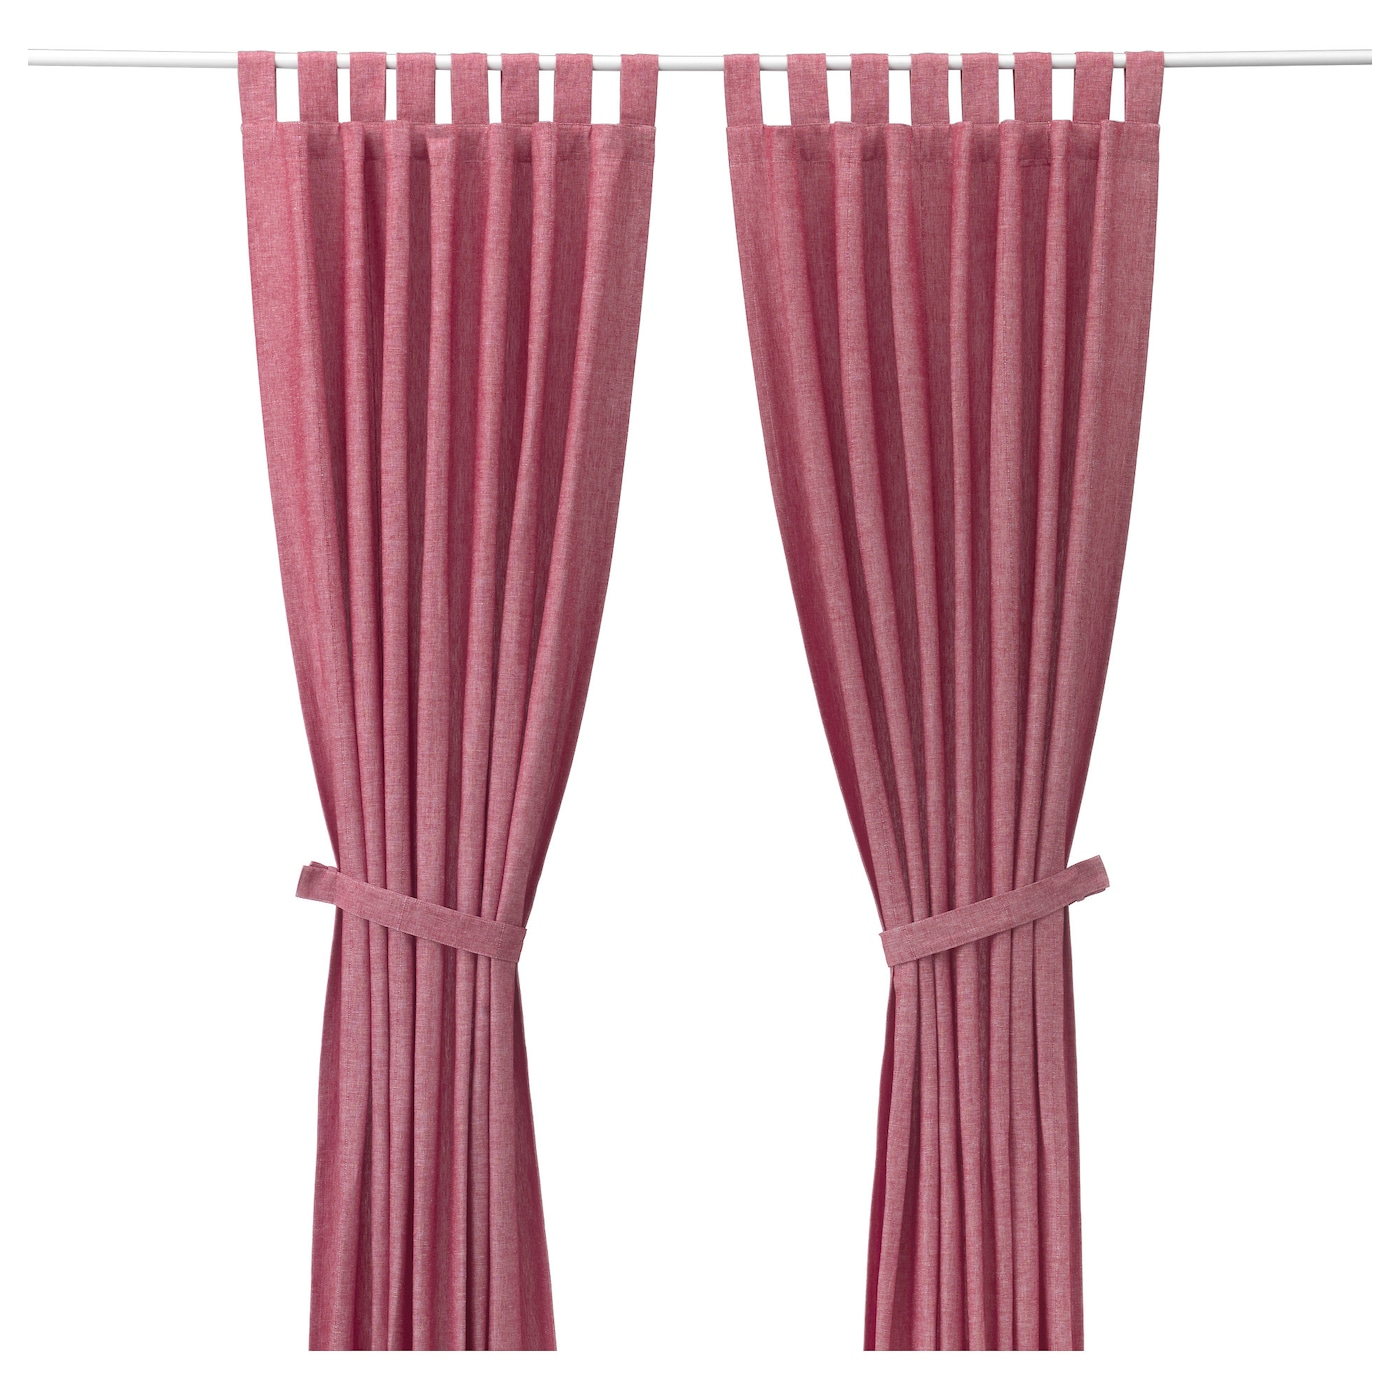 IKEA LENDA Curtains With Tie Backs, 1 Pair